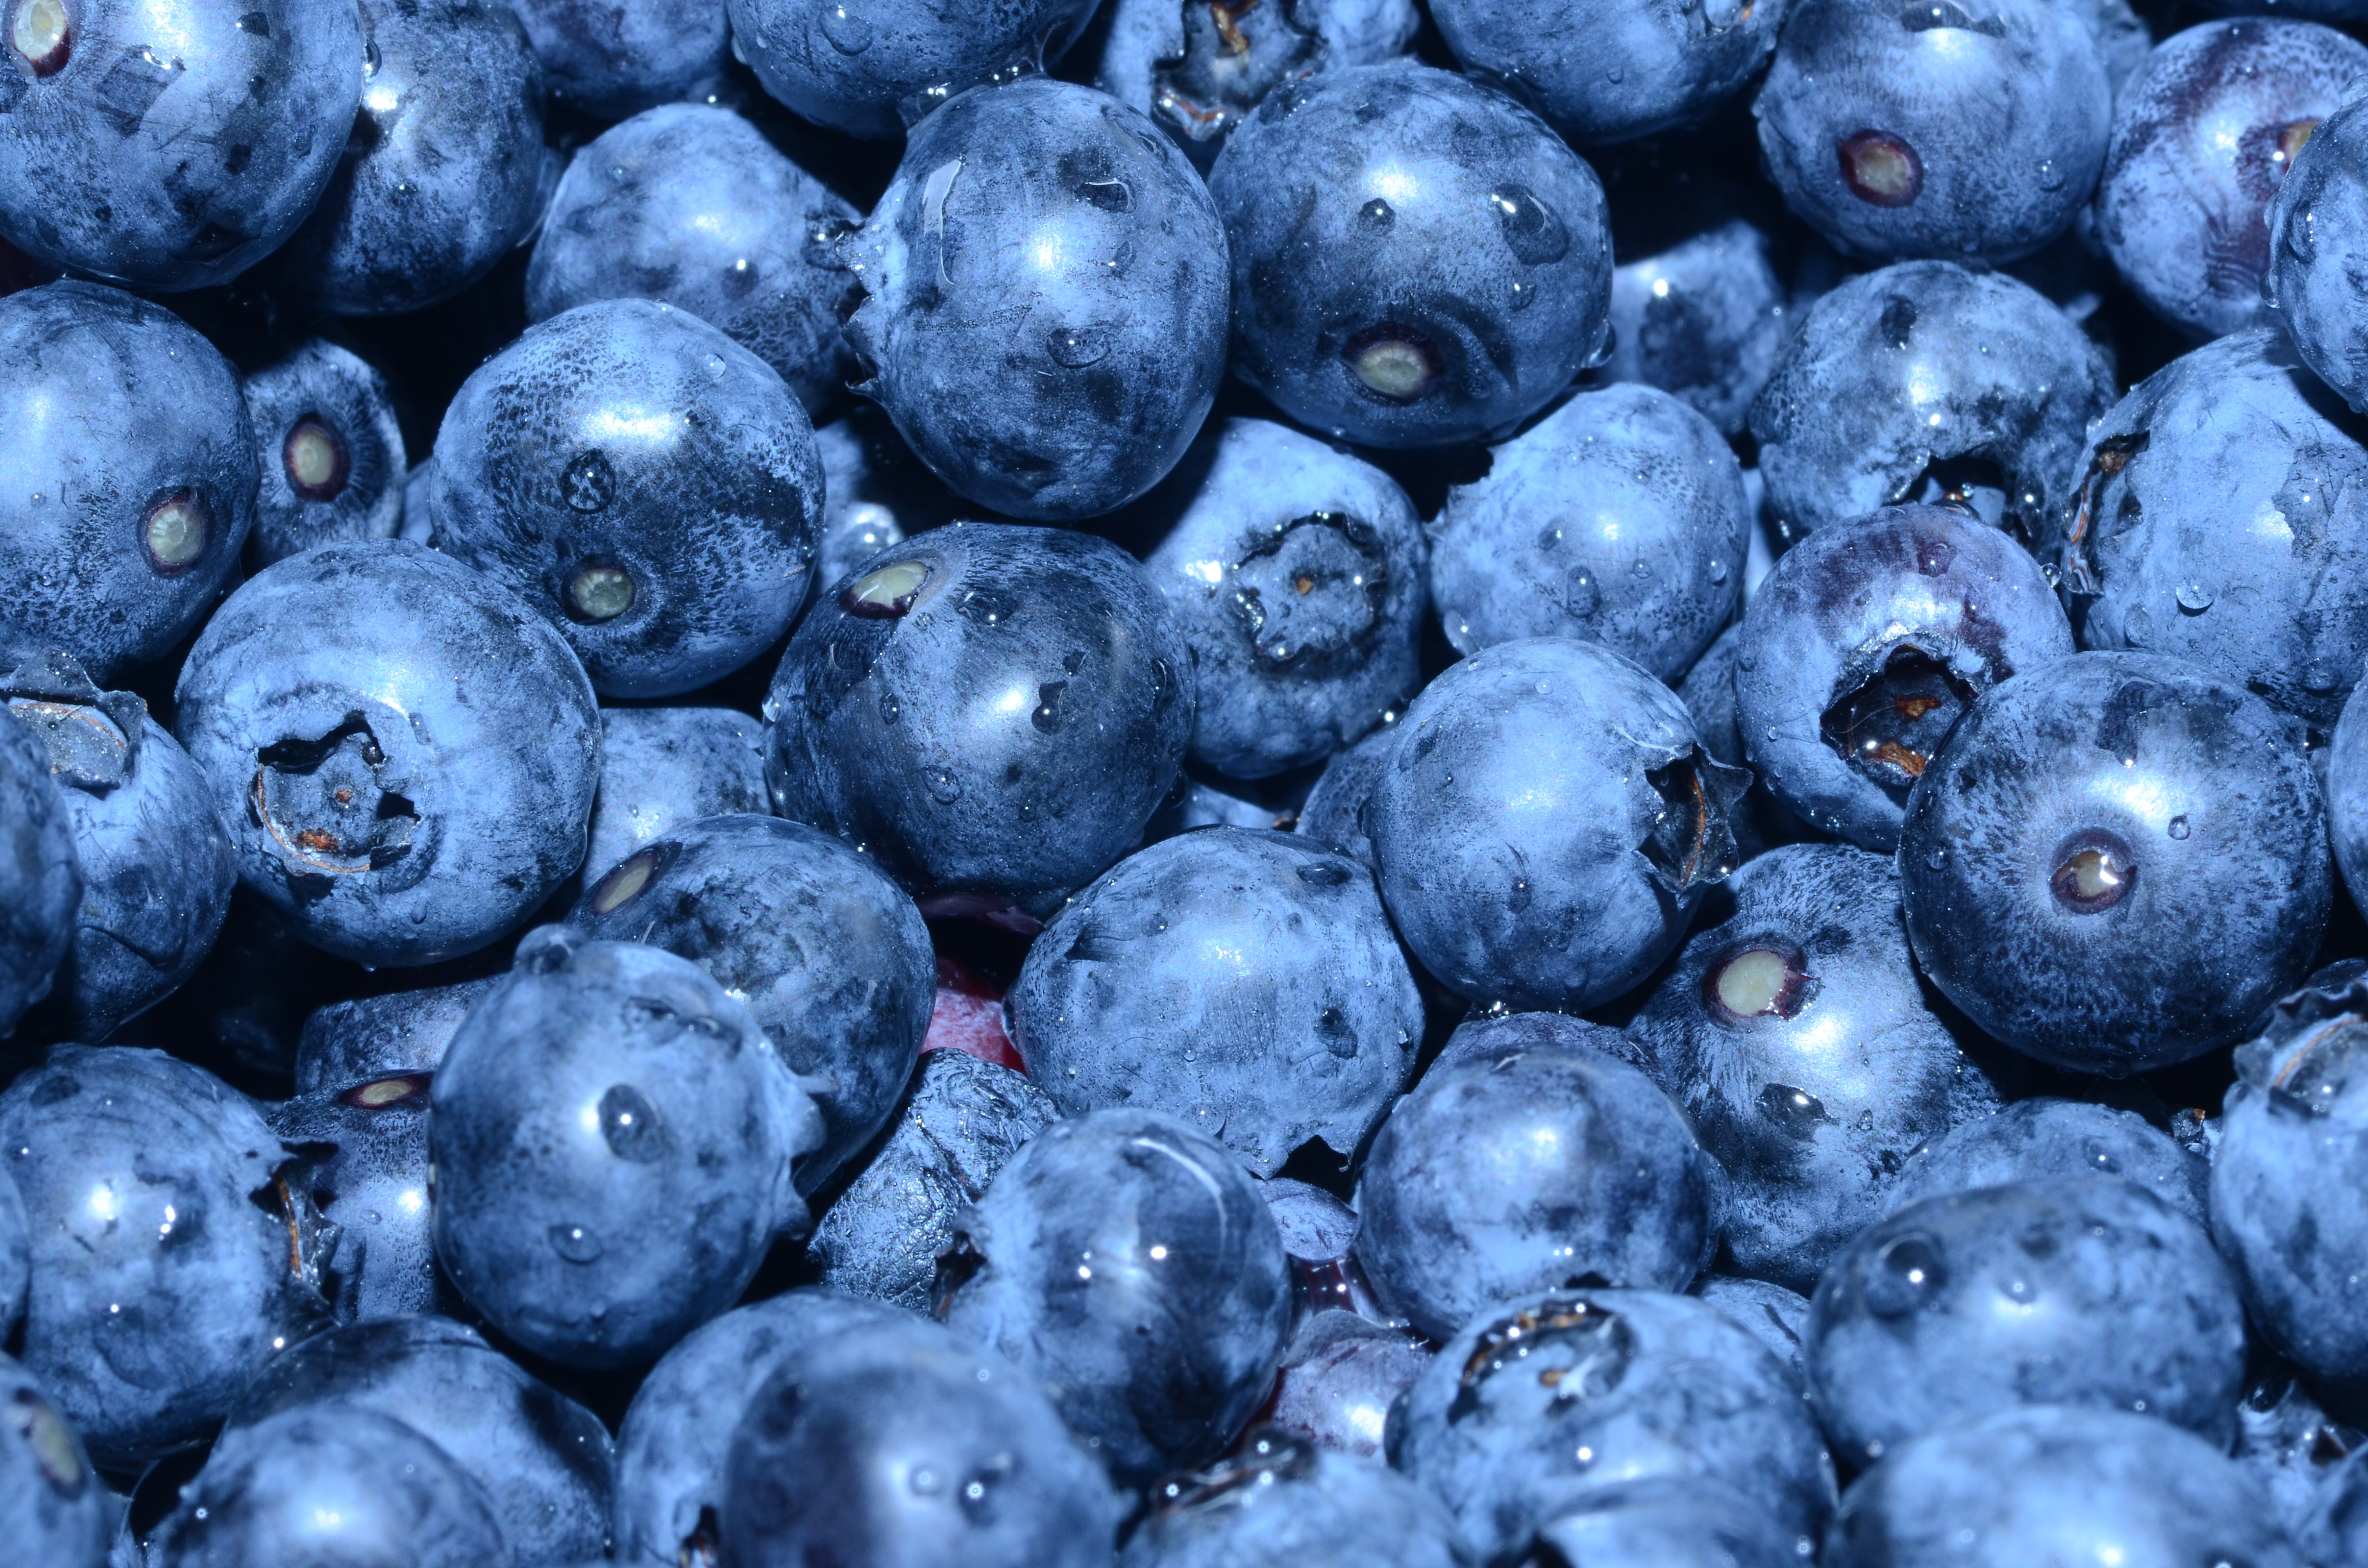 Optimising blueberry fruit nutritional quality using controlled spectra and mild stress treatment via polytunnel innovation